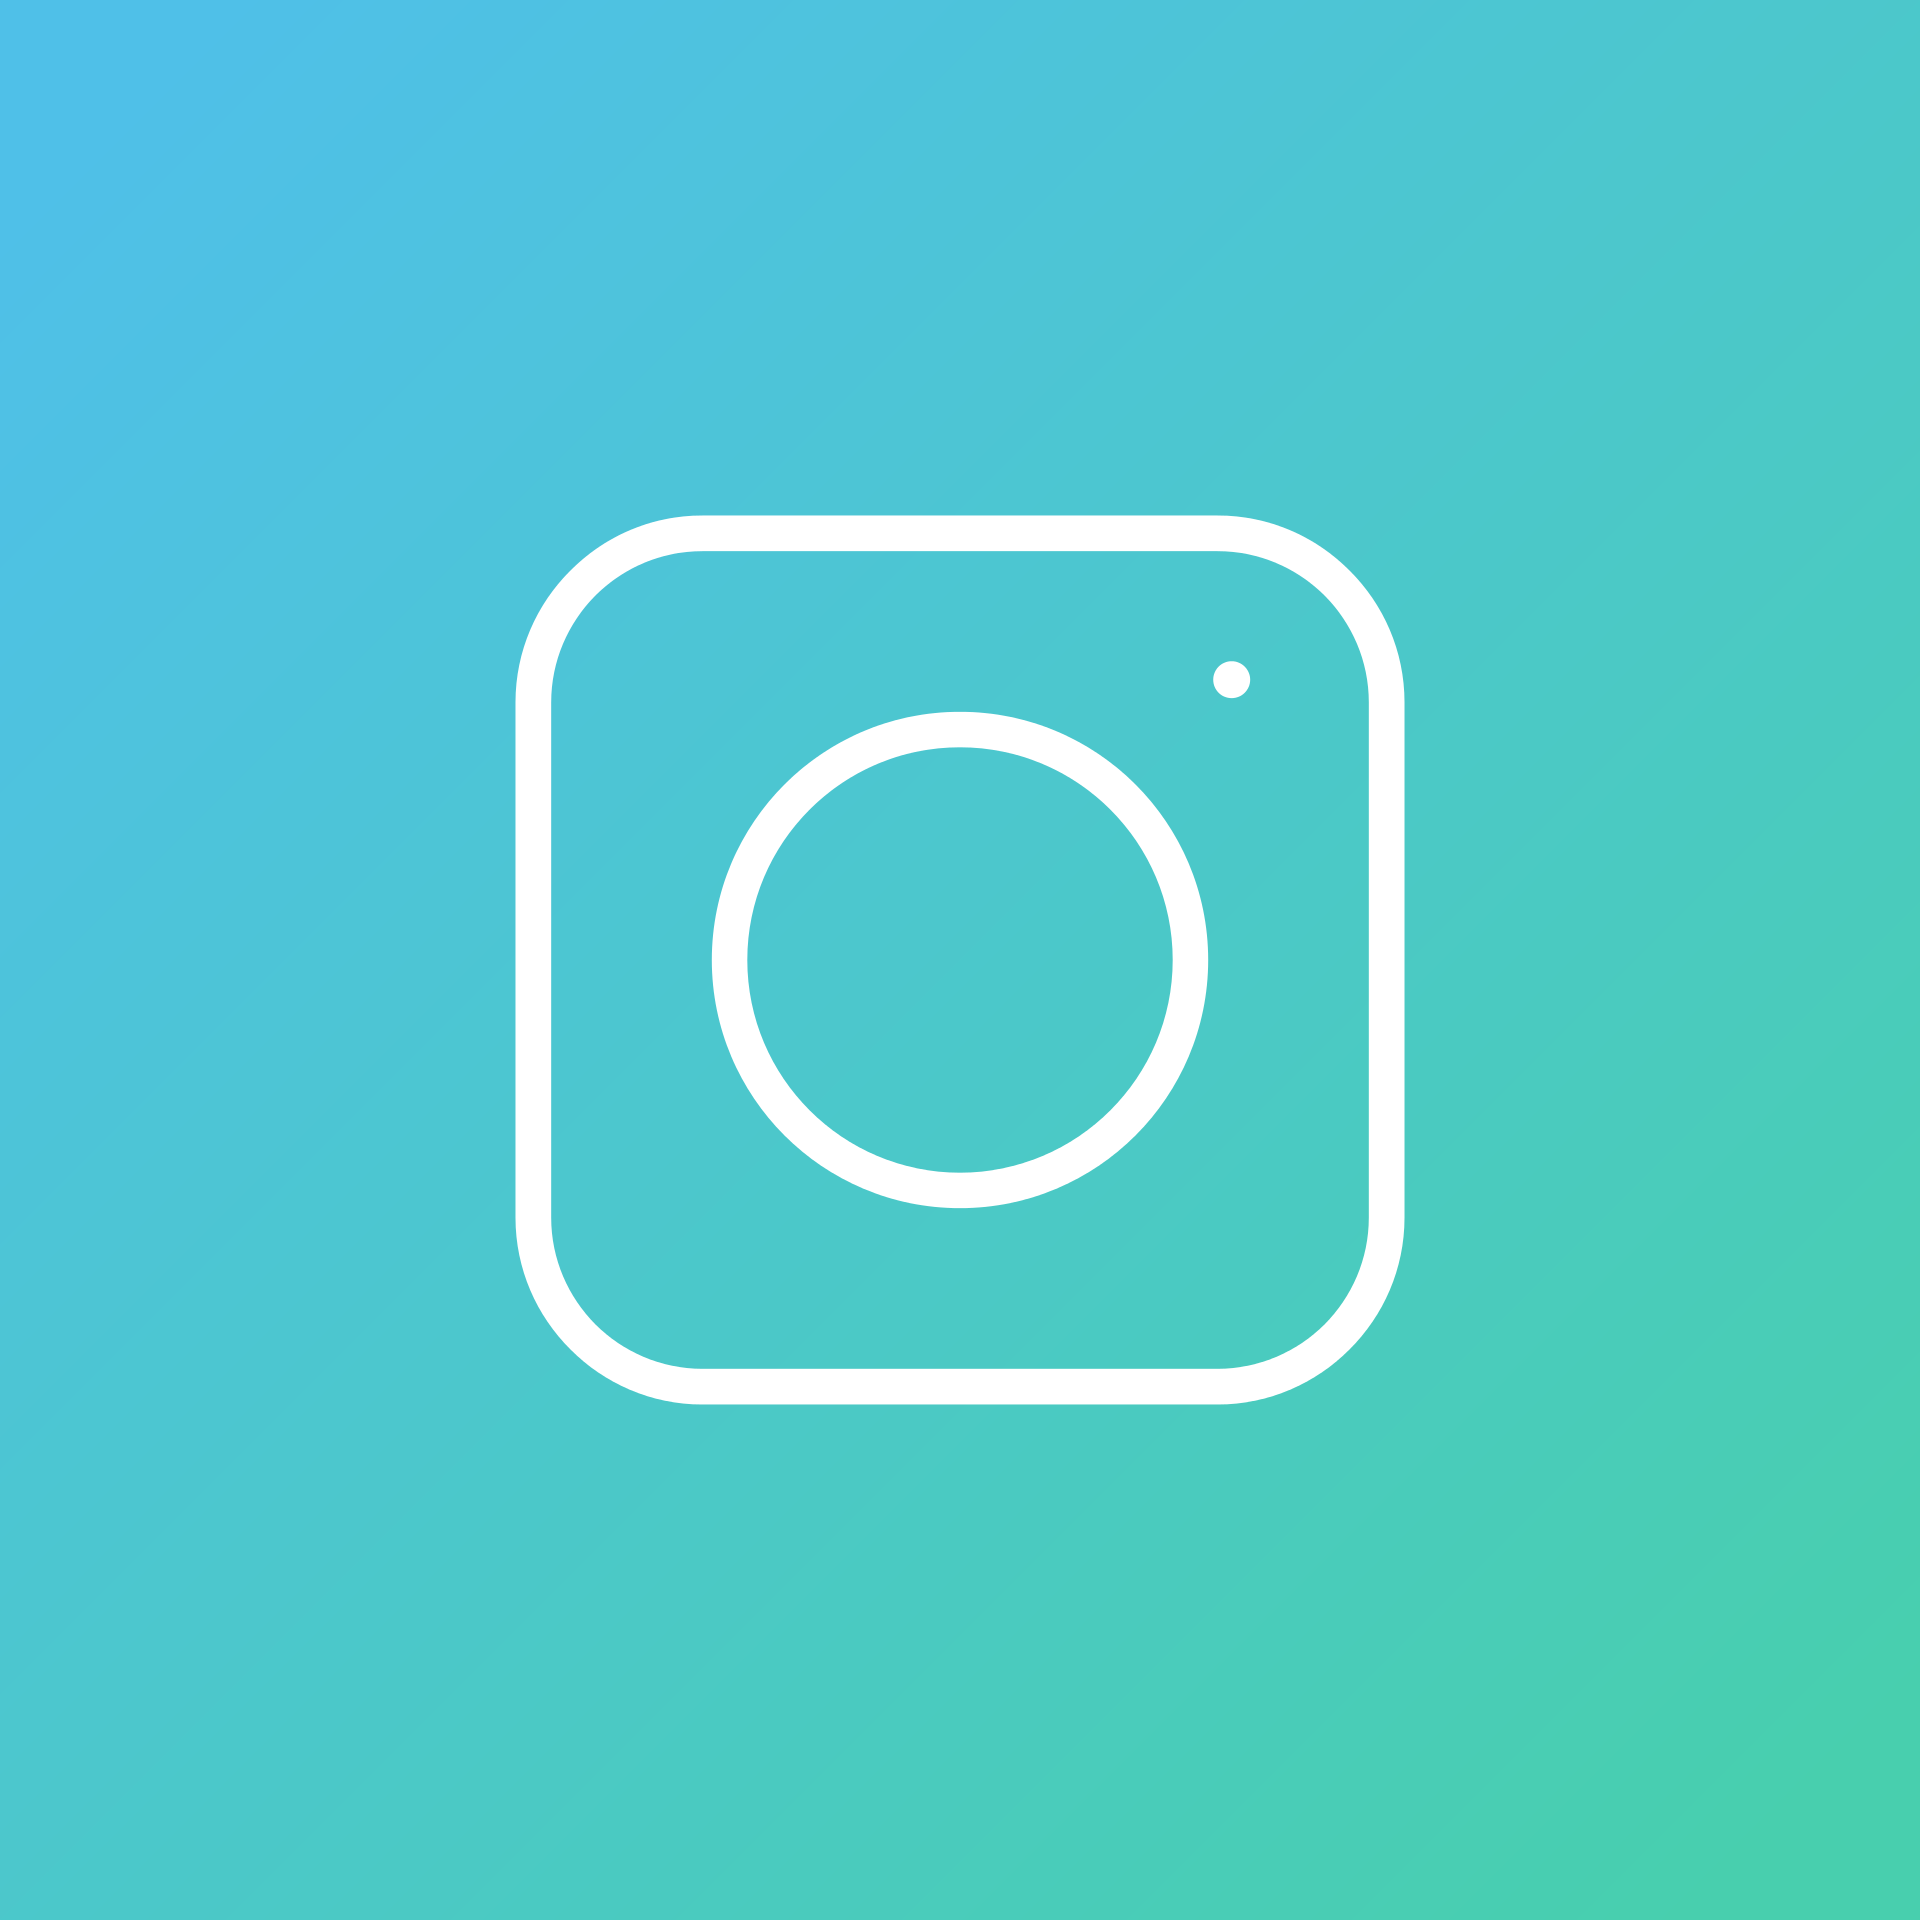 Instagram analytics tools